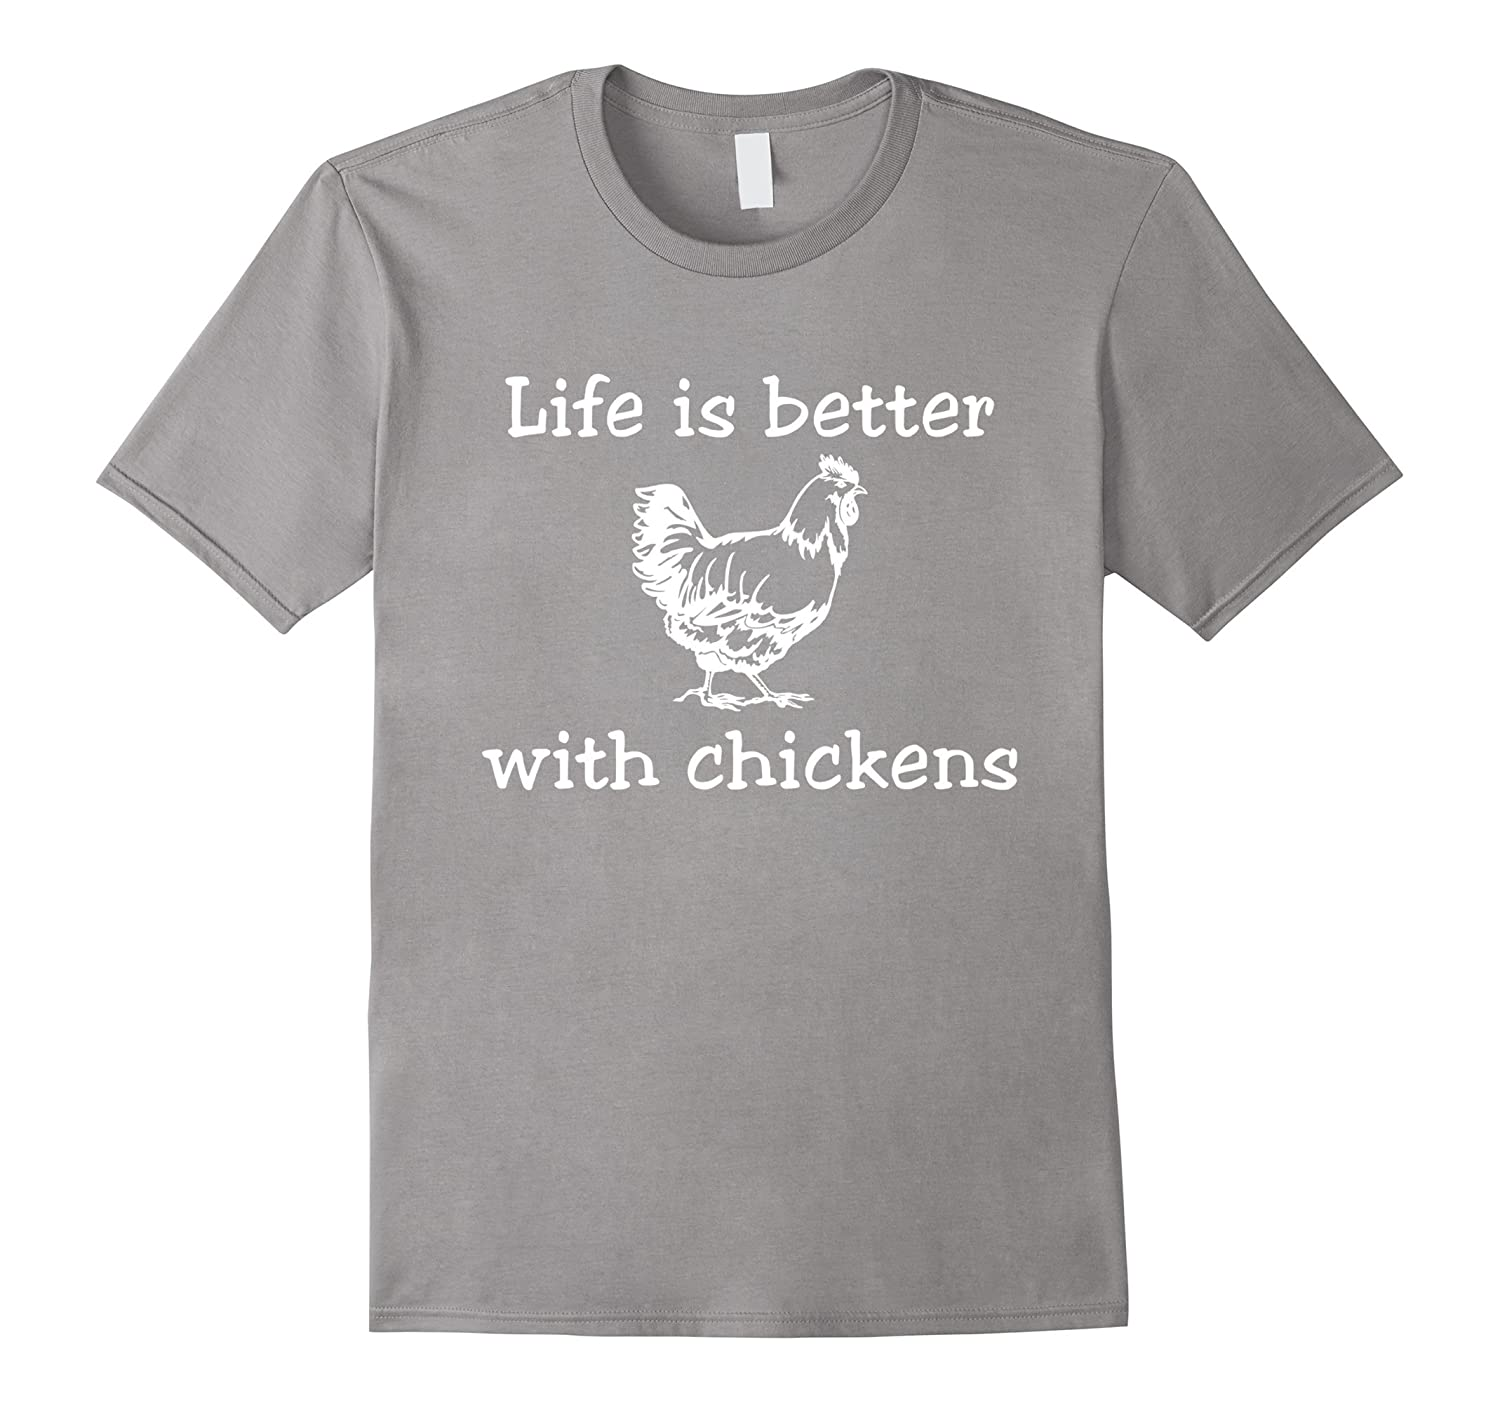 c87f7b19c7 Funny Chicken Shirt Life is better with chickens T-Shirt-TD – Teedep